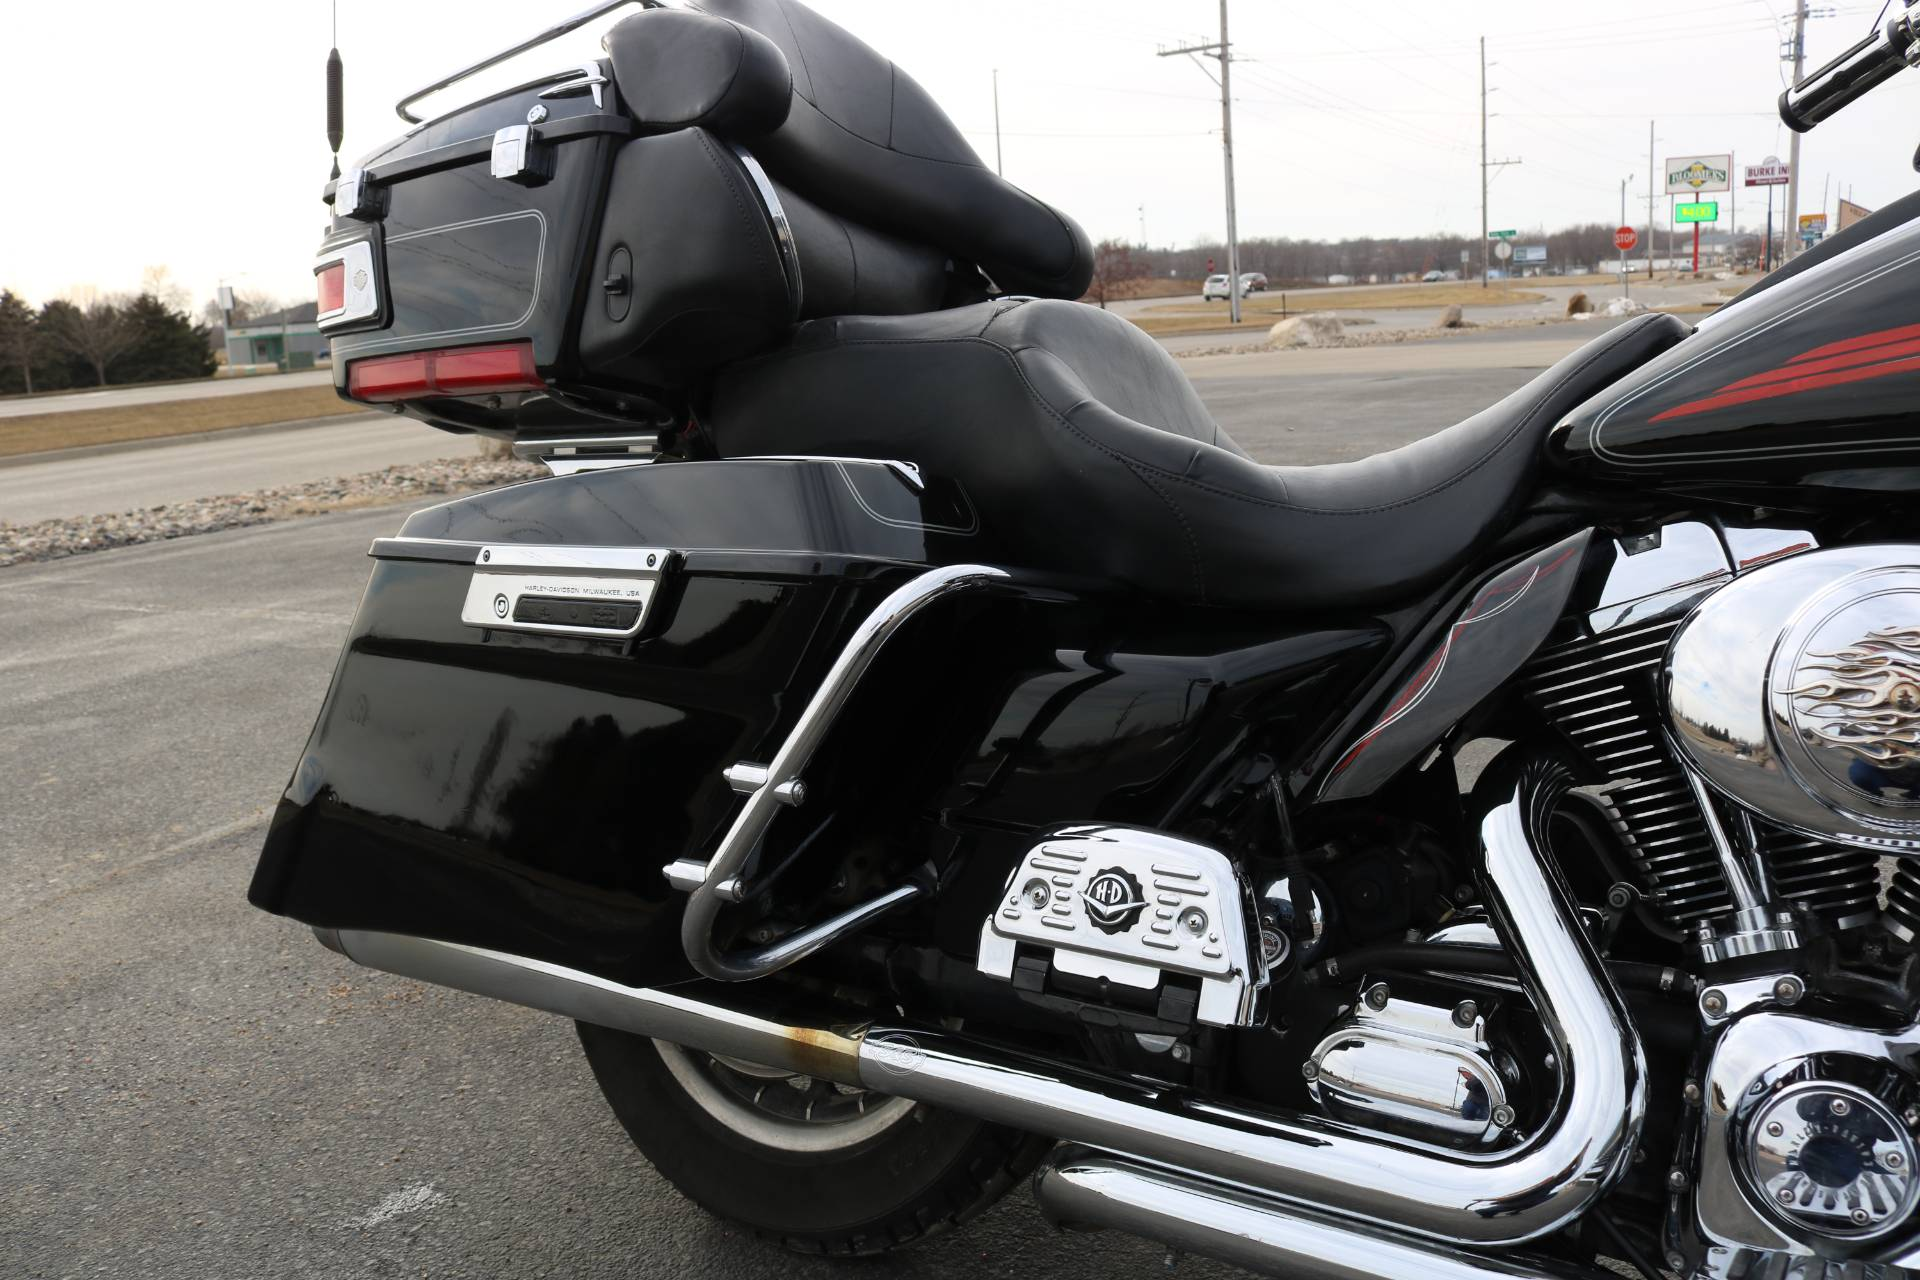 2005 Harley-Davidson FLHTCUI Ultra Classic® Electra Glide® in Carroll, Iowa - Photo 10